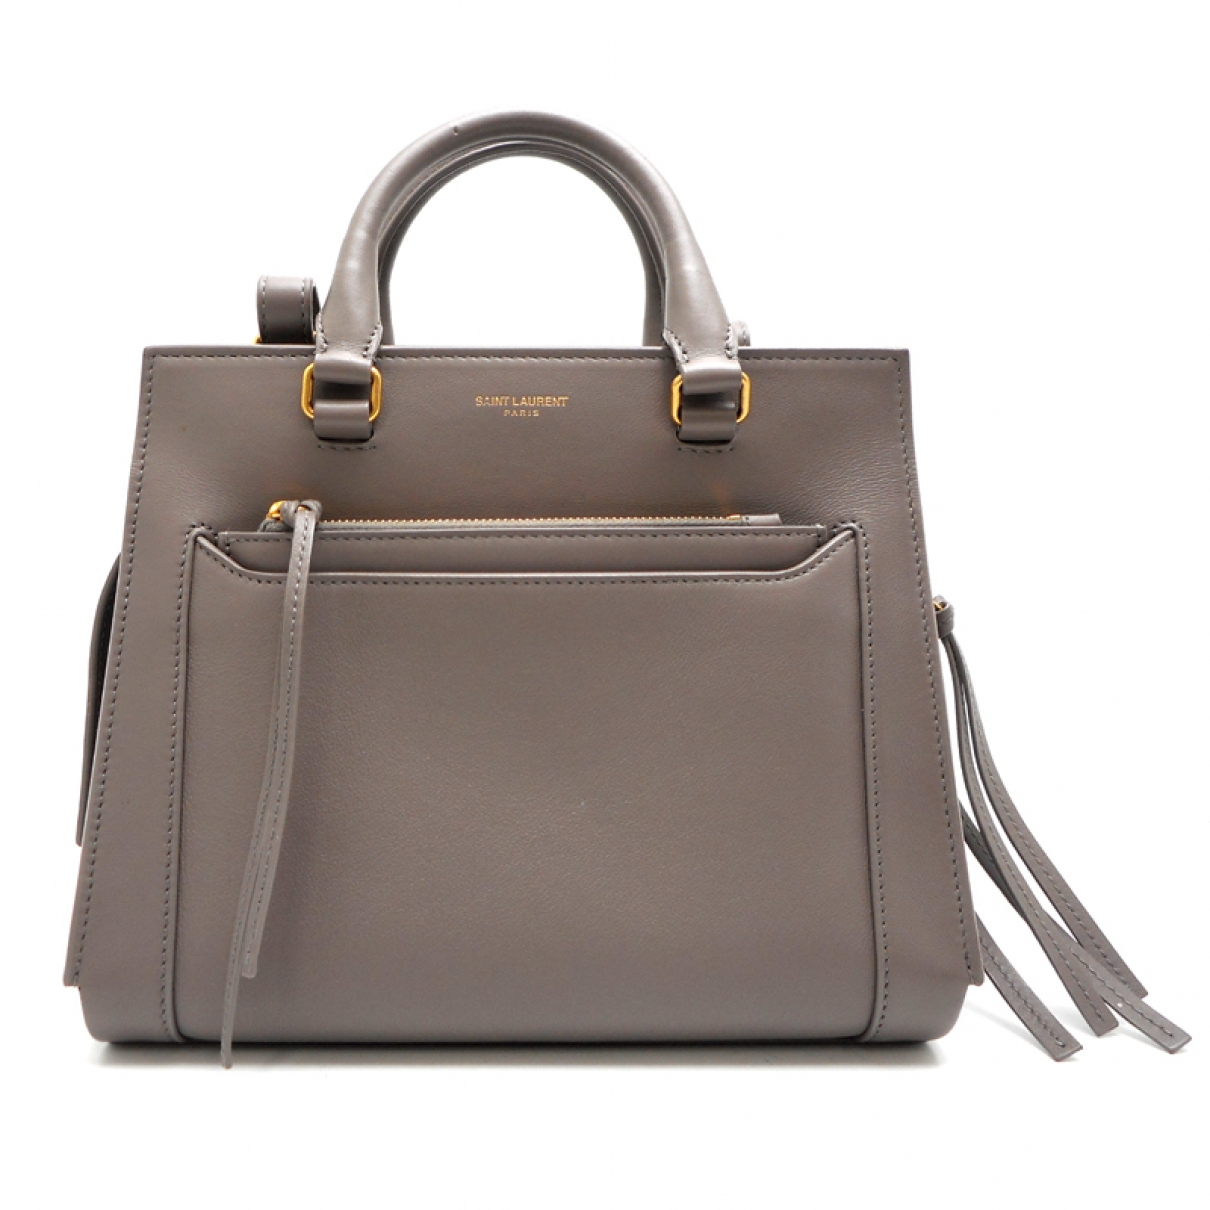 Saint Laurent East Side Beige Leather handbag for Women \N